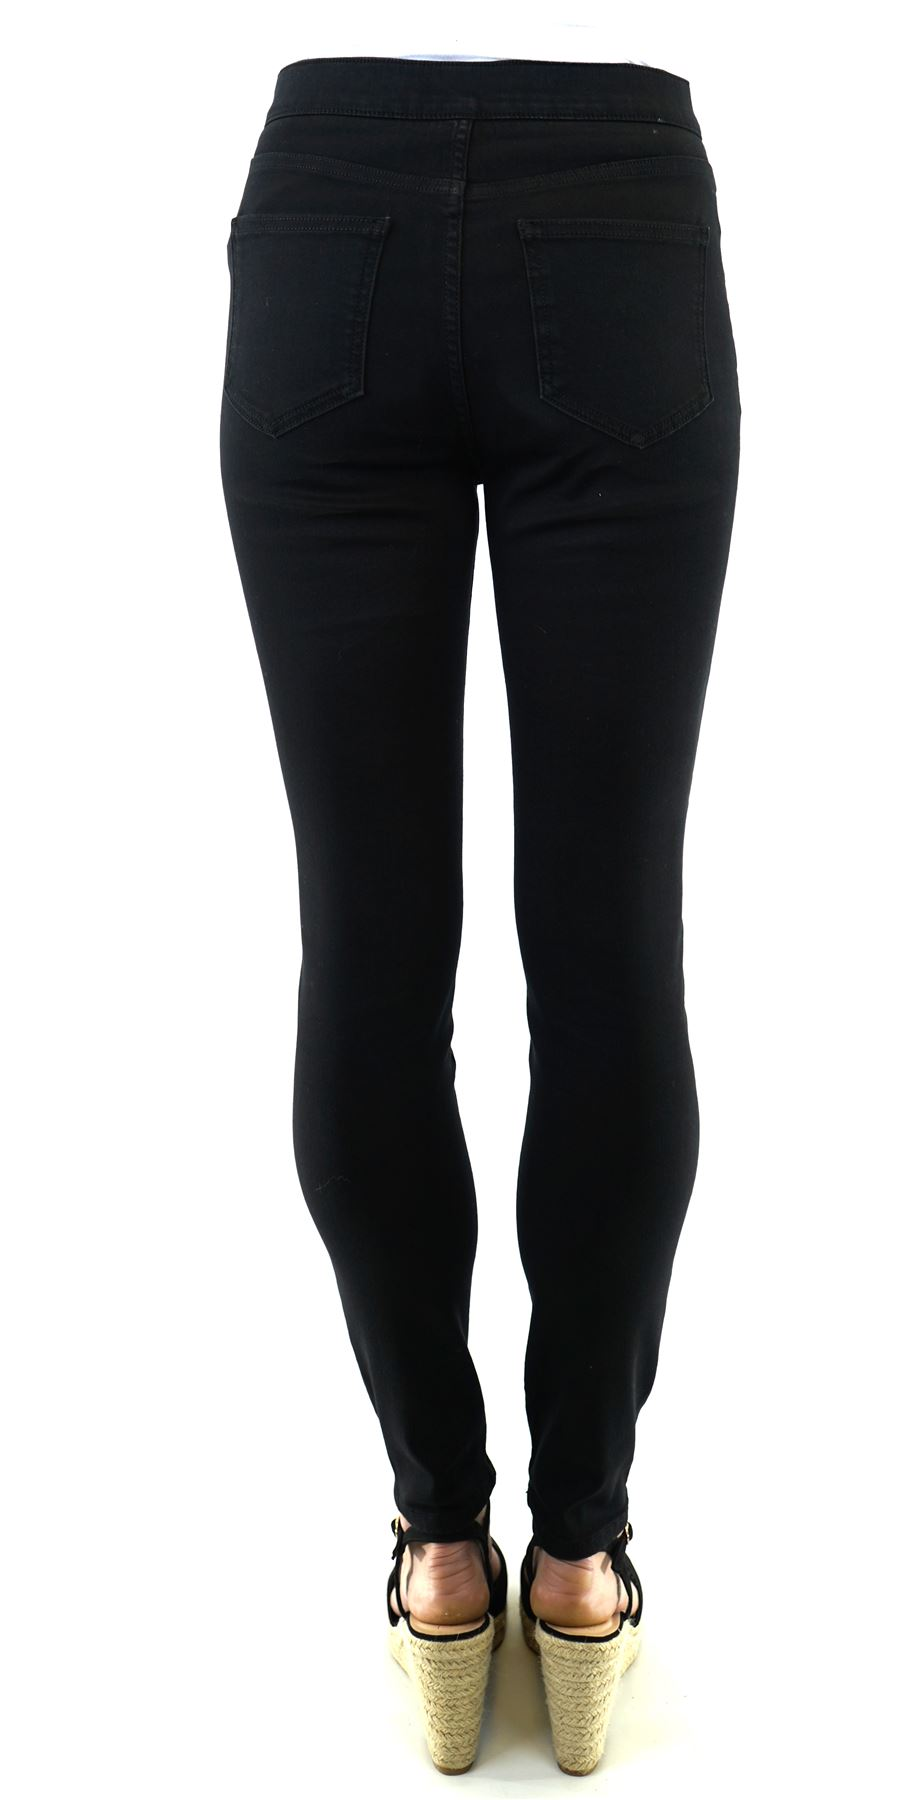 thumbnail 64 - Karen Millen Womens Casual Black Denim Button Jegging Ladies Jean Stylish Gift